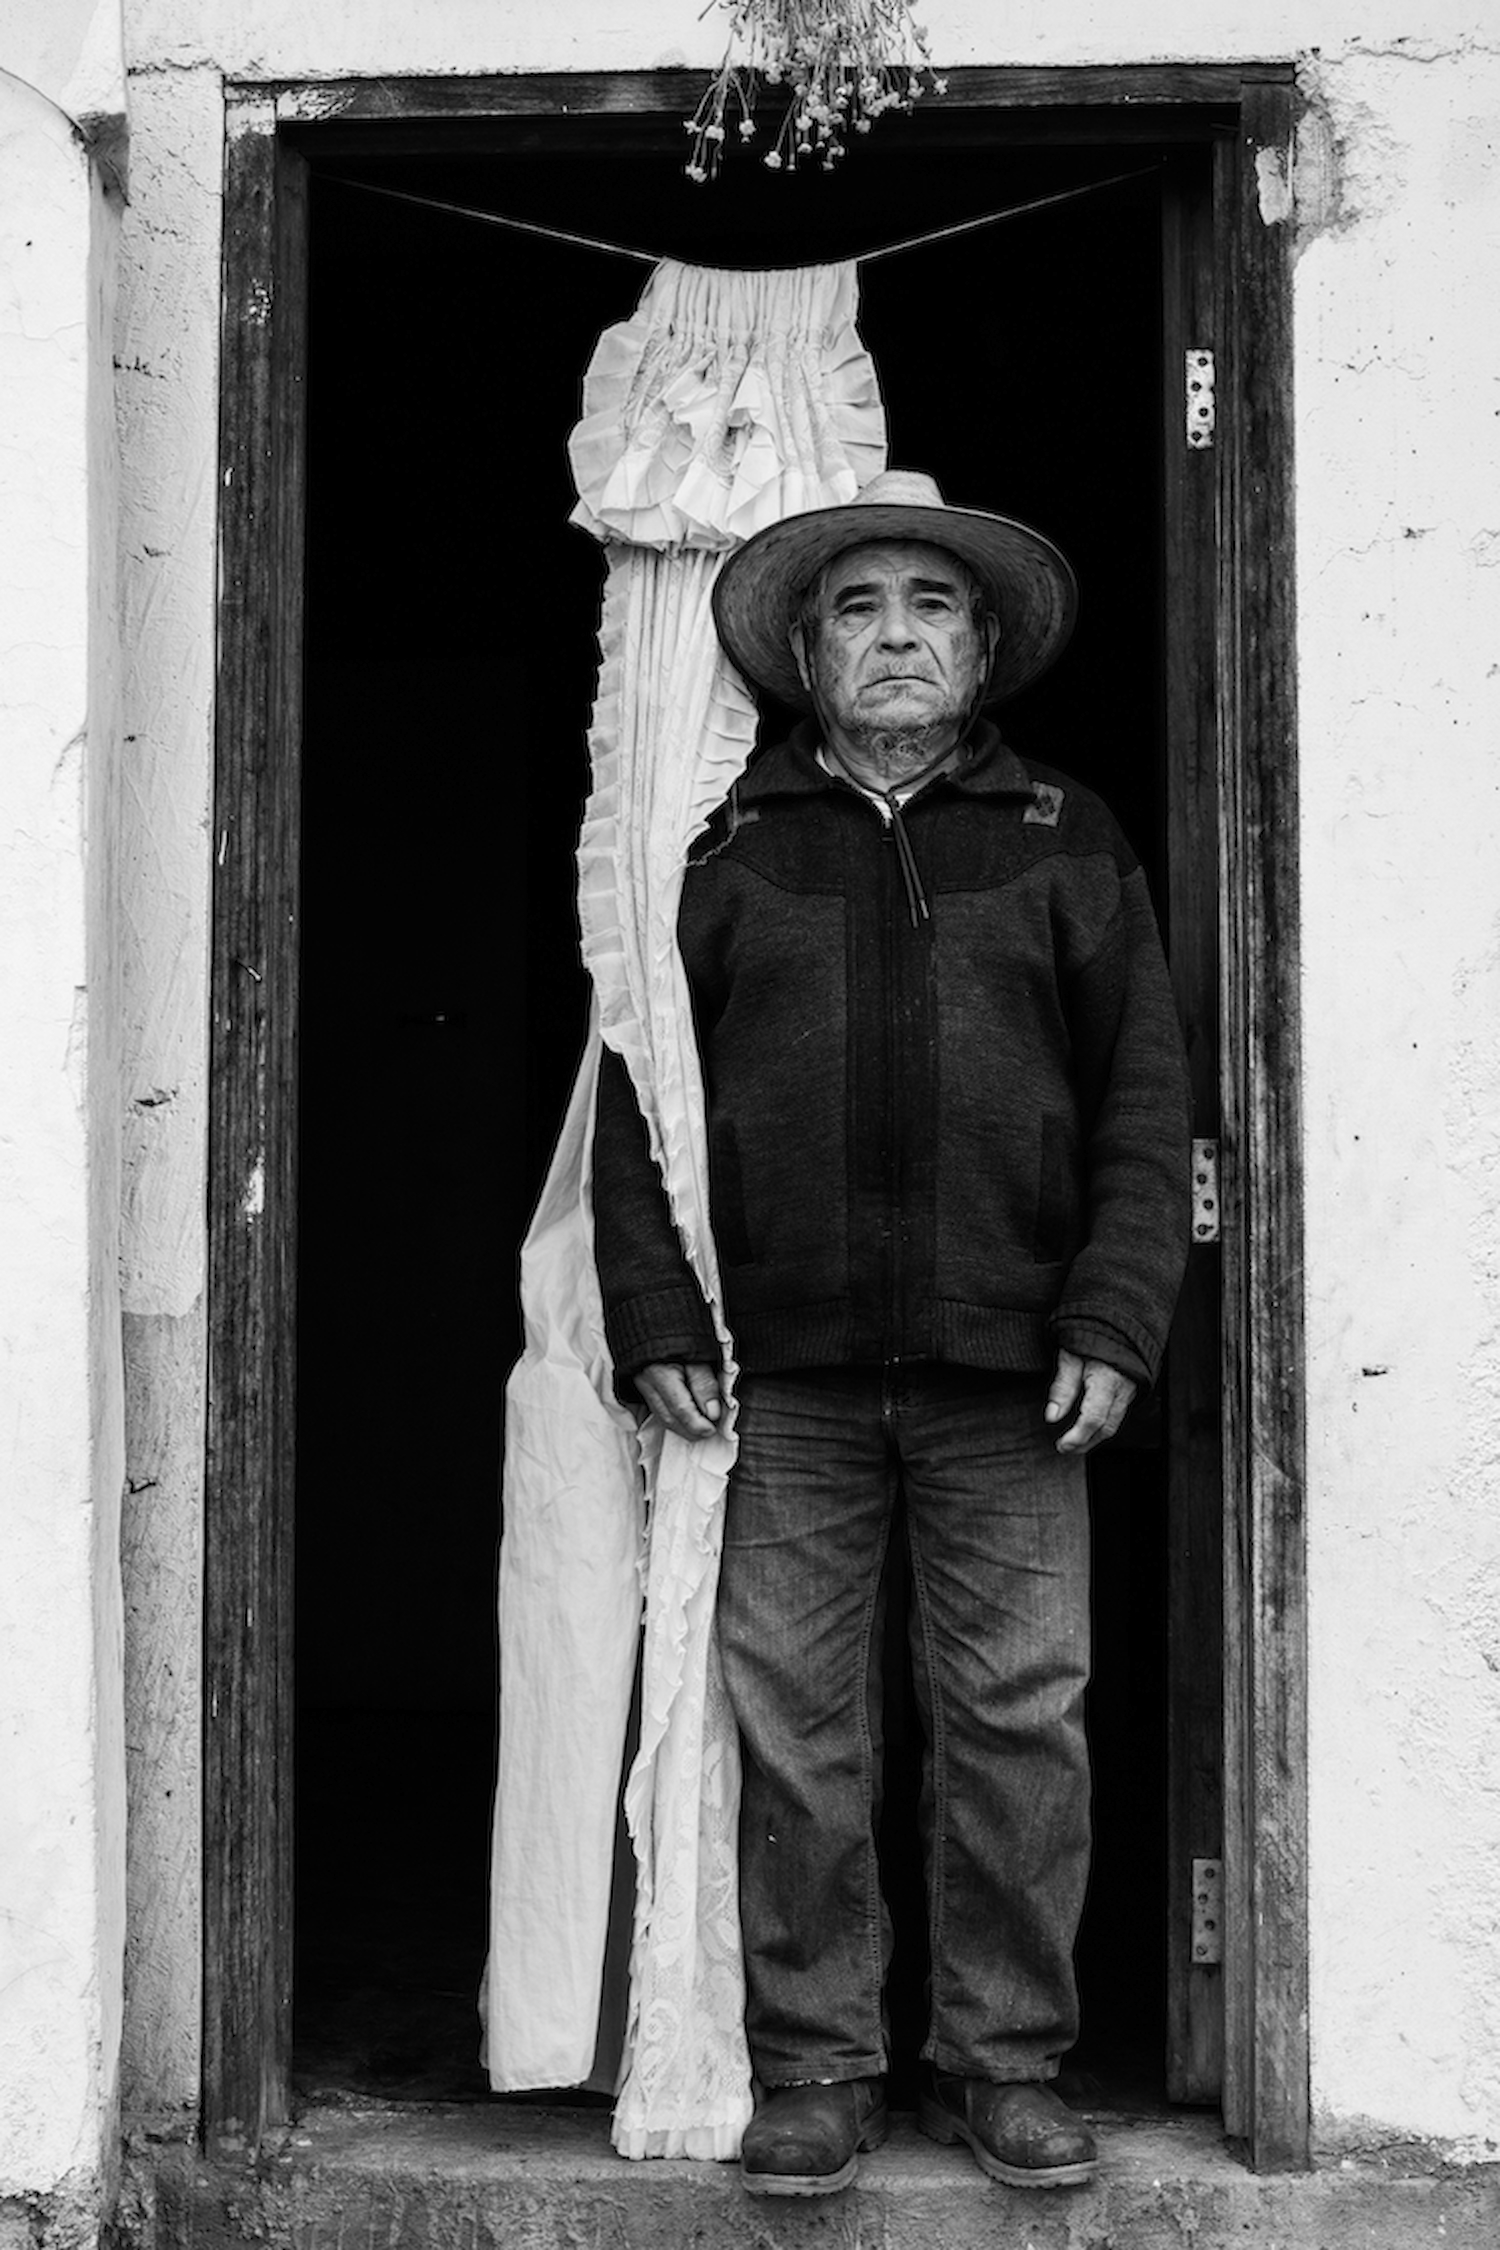 A Mixe man poses in his front door. Tamazulapam del Espiritu Santo, Oaxaca, Mexico.